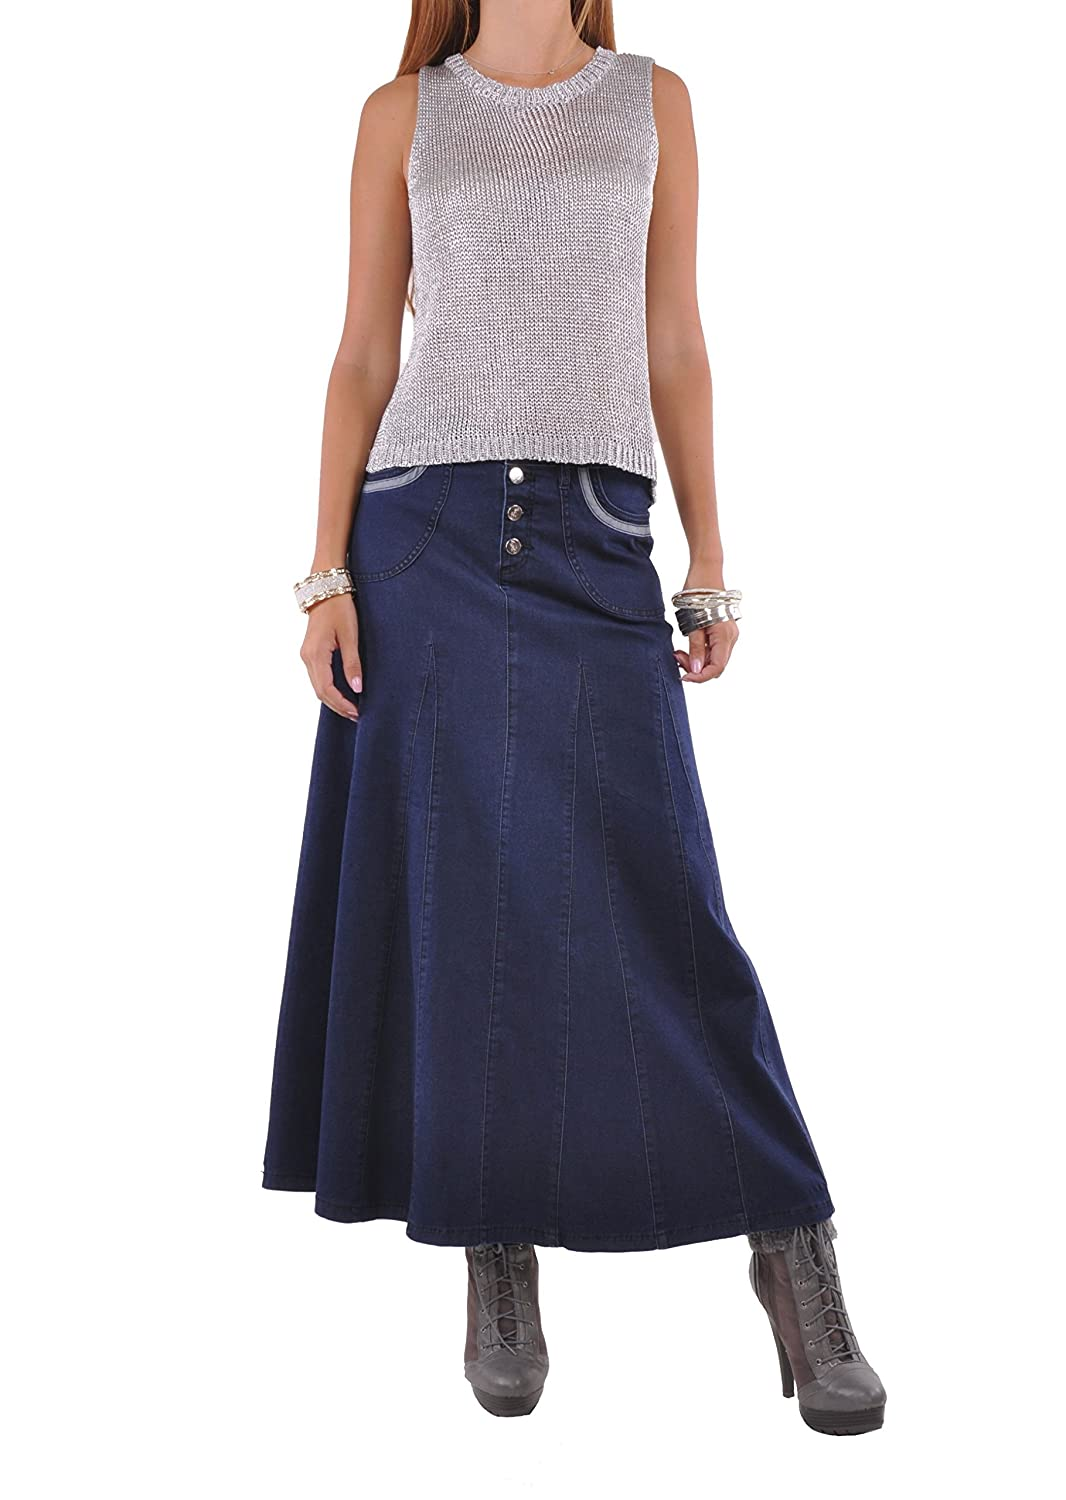 Style J Effortless Beauty Denim Skirt